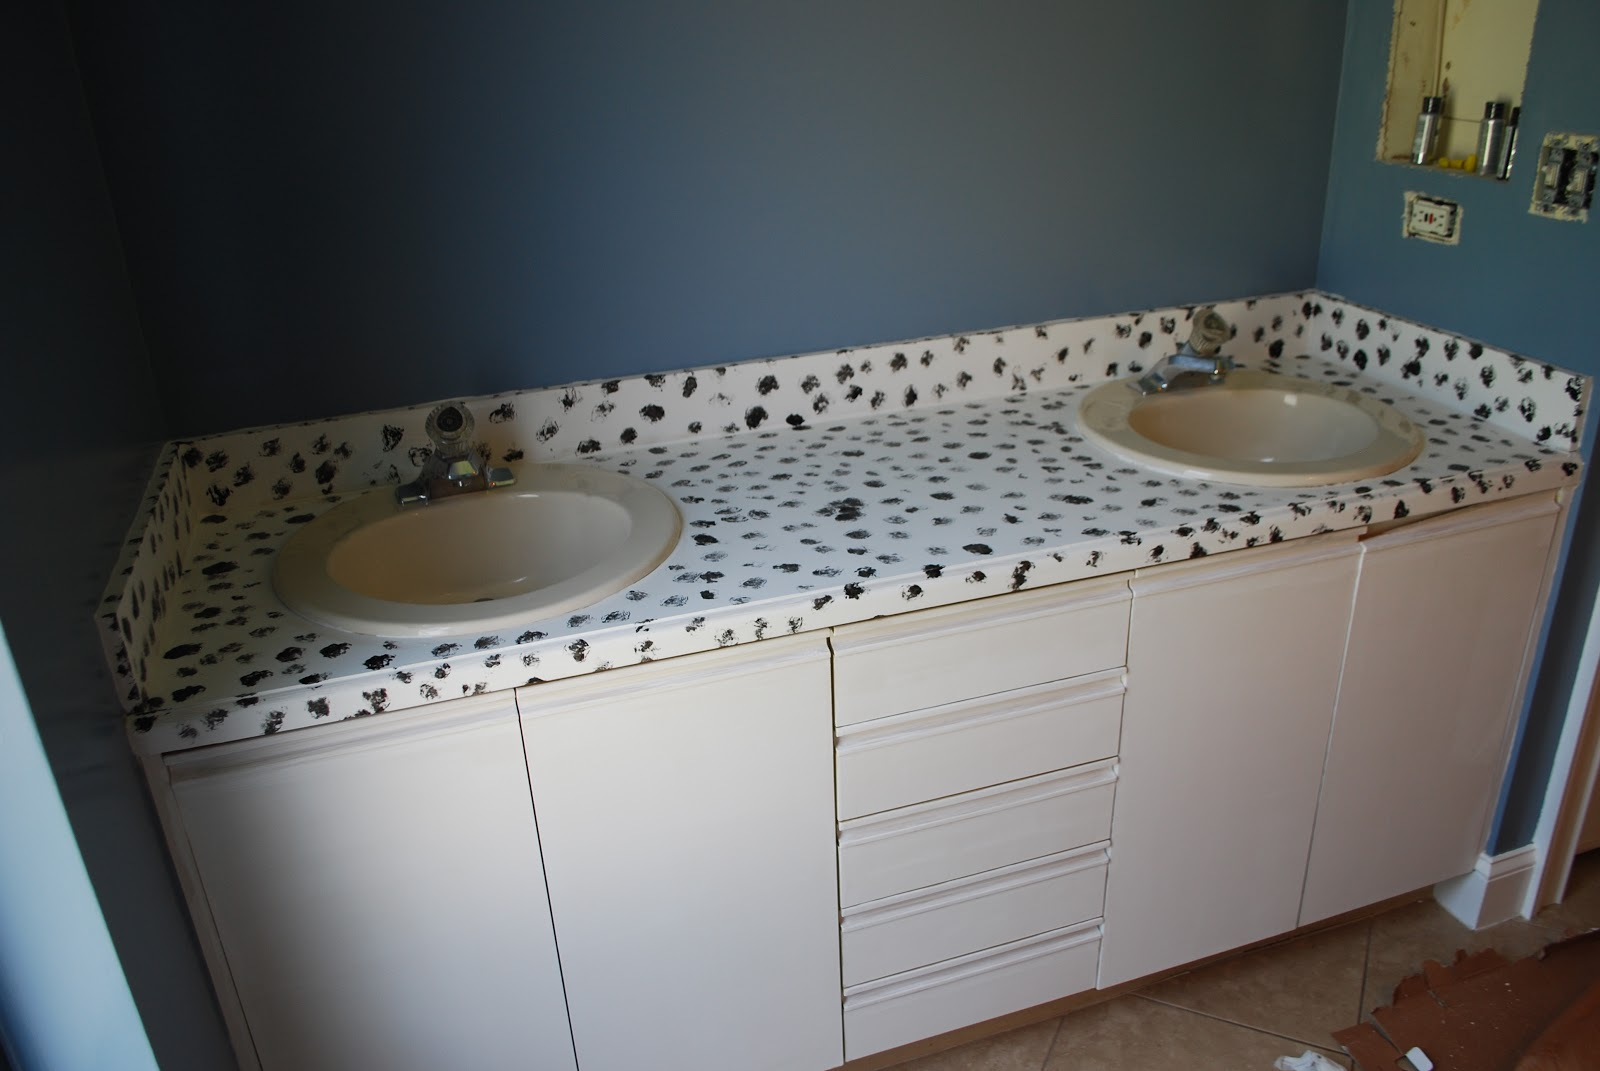 How to paint bathroom countertops -  Base In A Random Pattern Making Sure To Not Overlap The Two Colors Too Much Just Occasionally Try To Convince Yourself That The Countertop Really Is